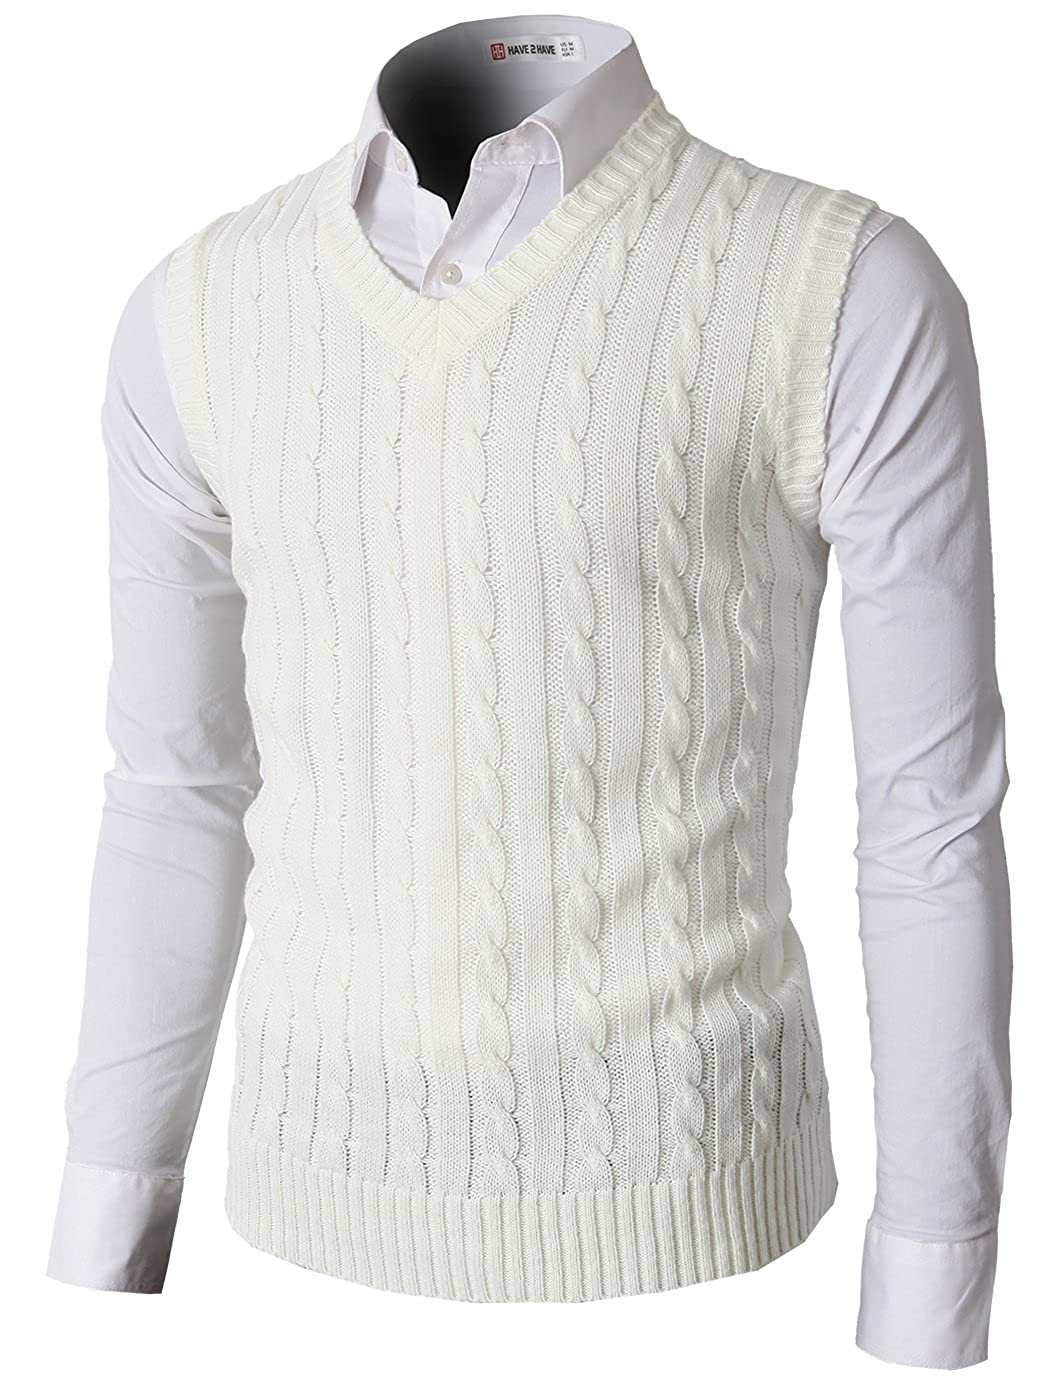 1930s Men's Costumes: Gangster, Clyde Barrow, Mummy, Dracula, Frankenstein H2H Mens Casual Knitted Slim Fit V-neck Vest With Twisted Patterned $26.80 AT vintagedancer.com